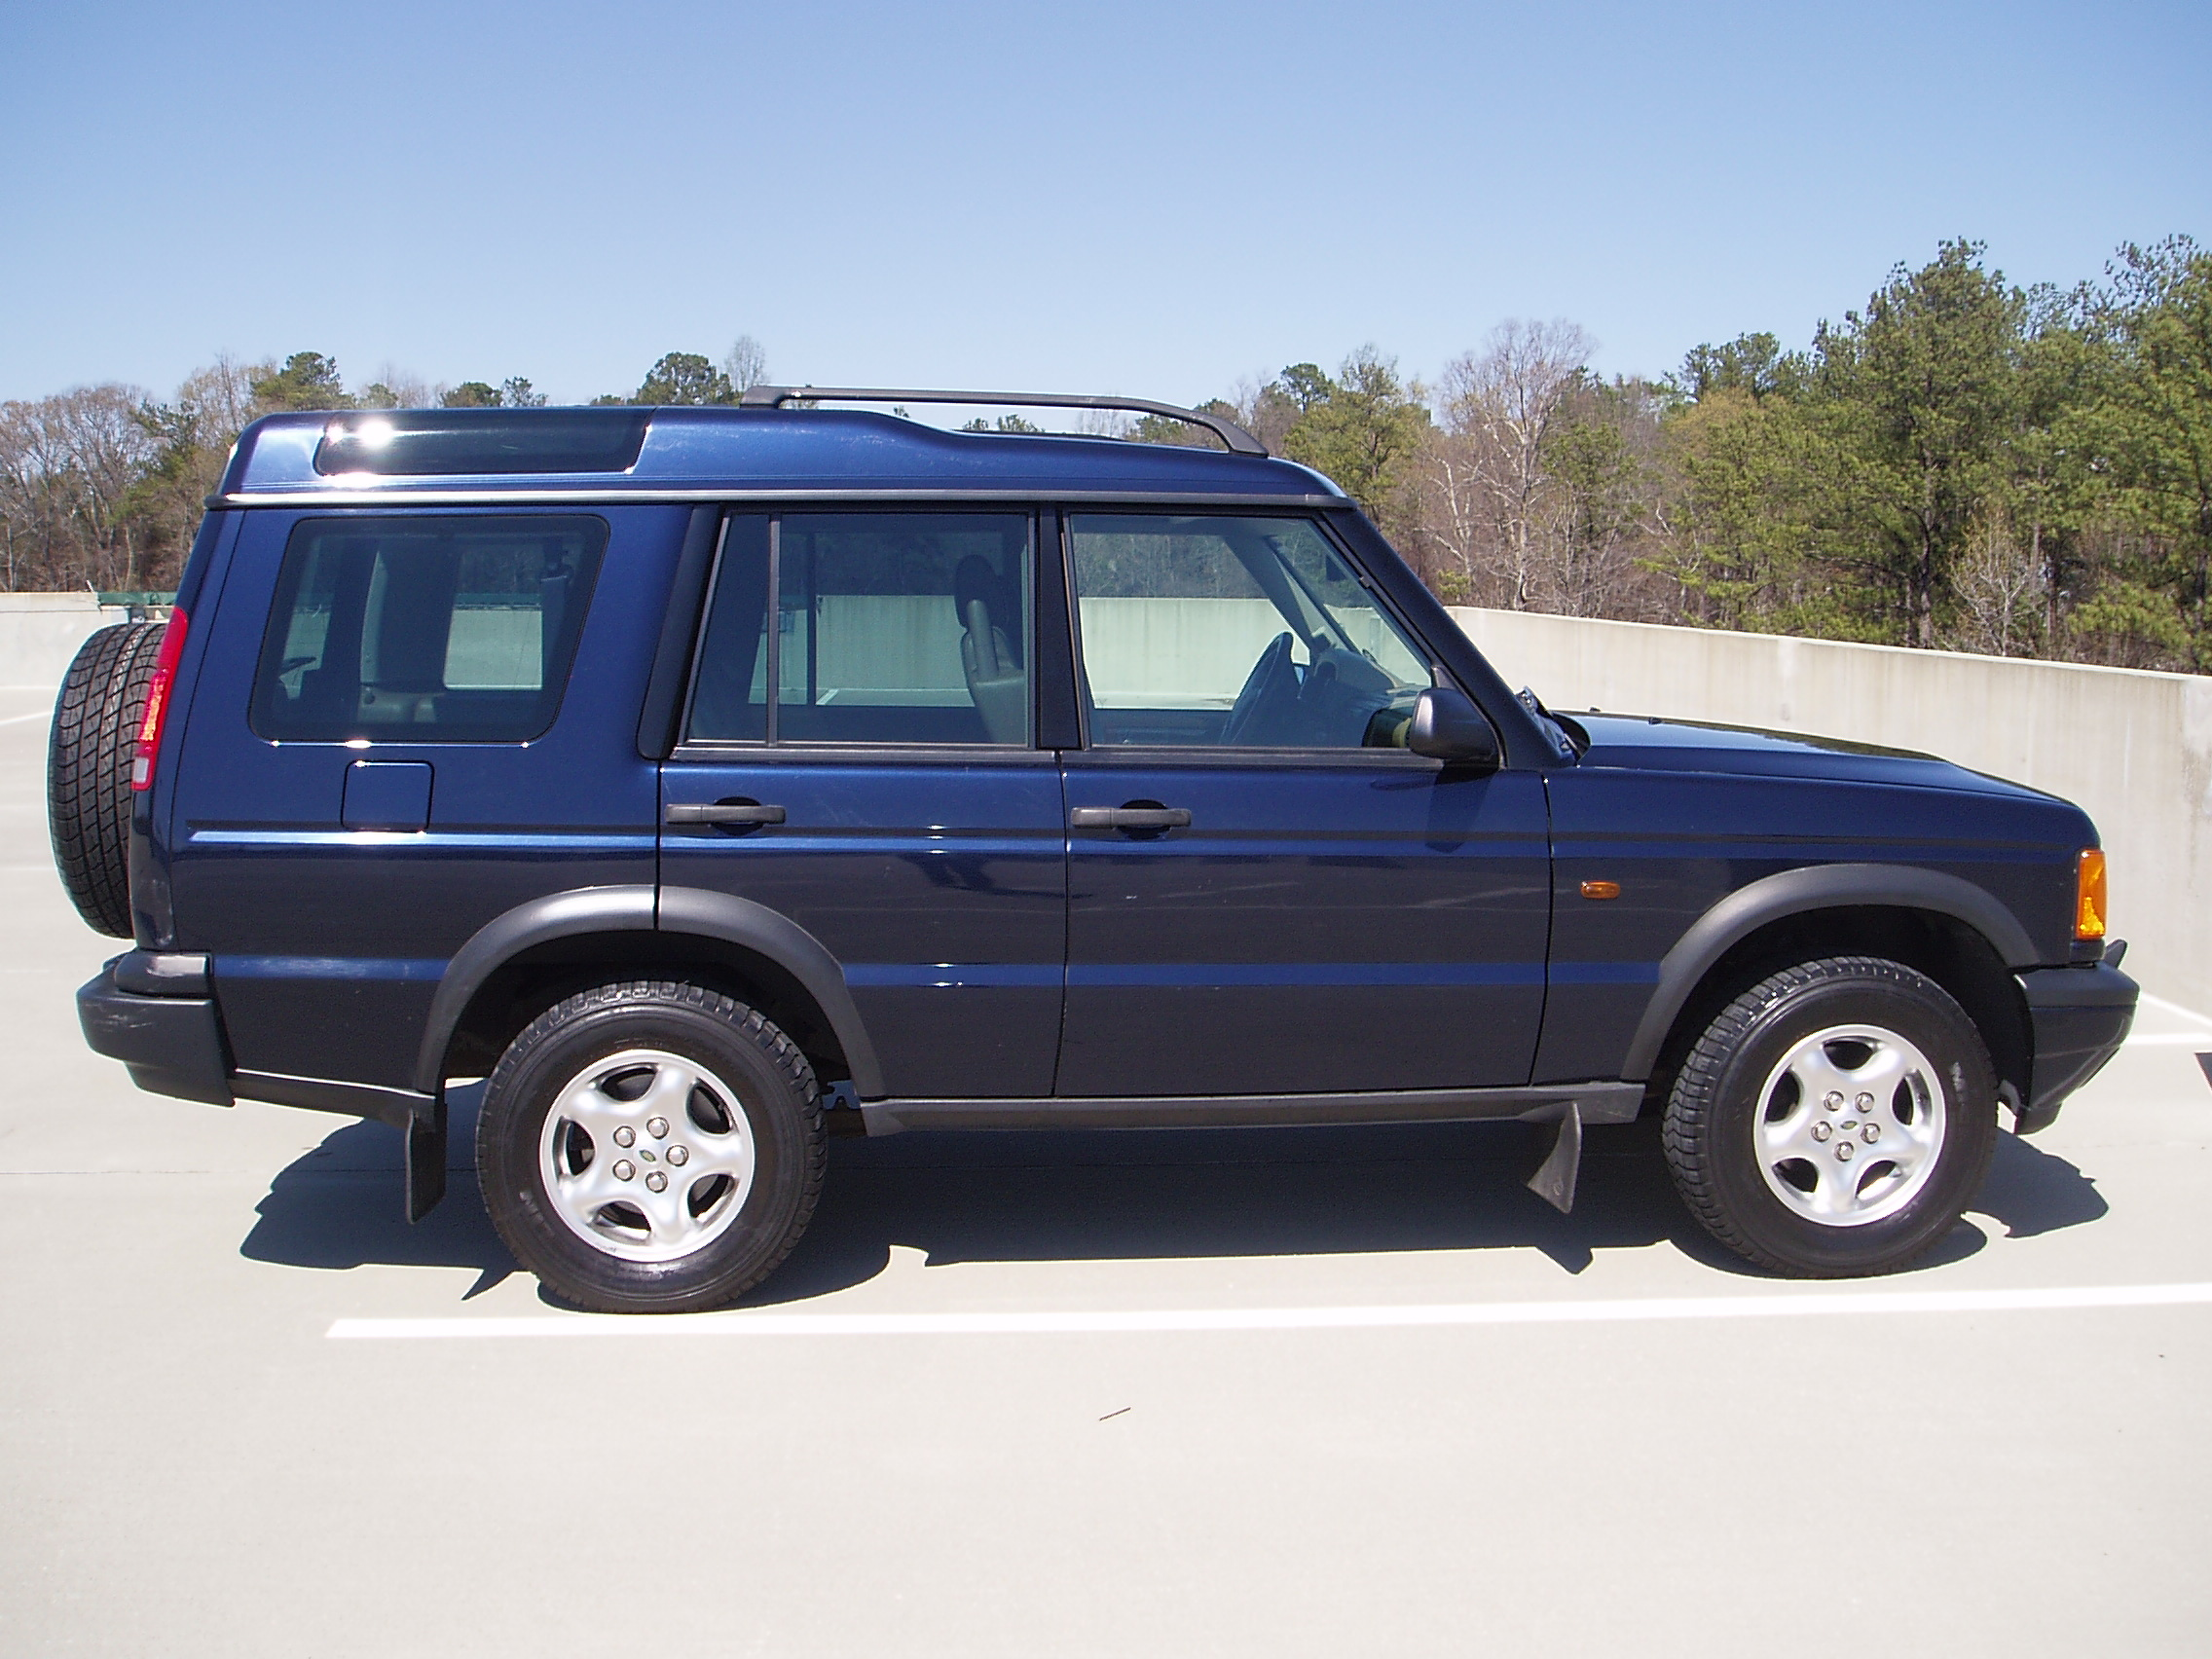 2000 Land Rover Discovery Series Ii #13 | BestCarMag.com